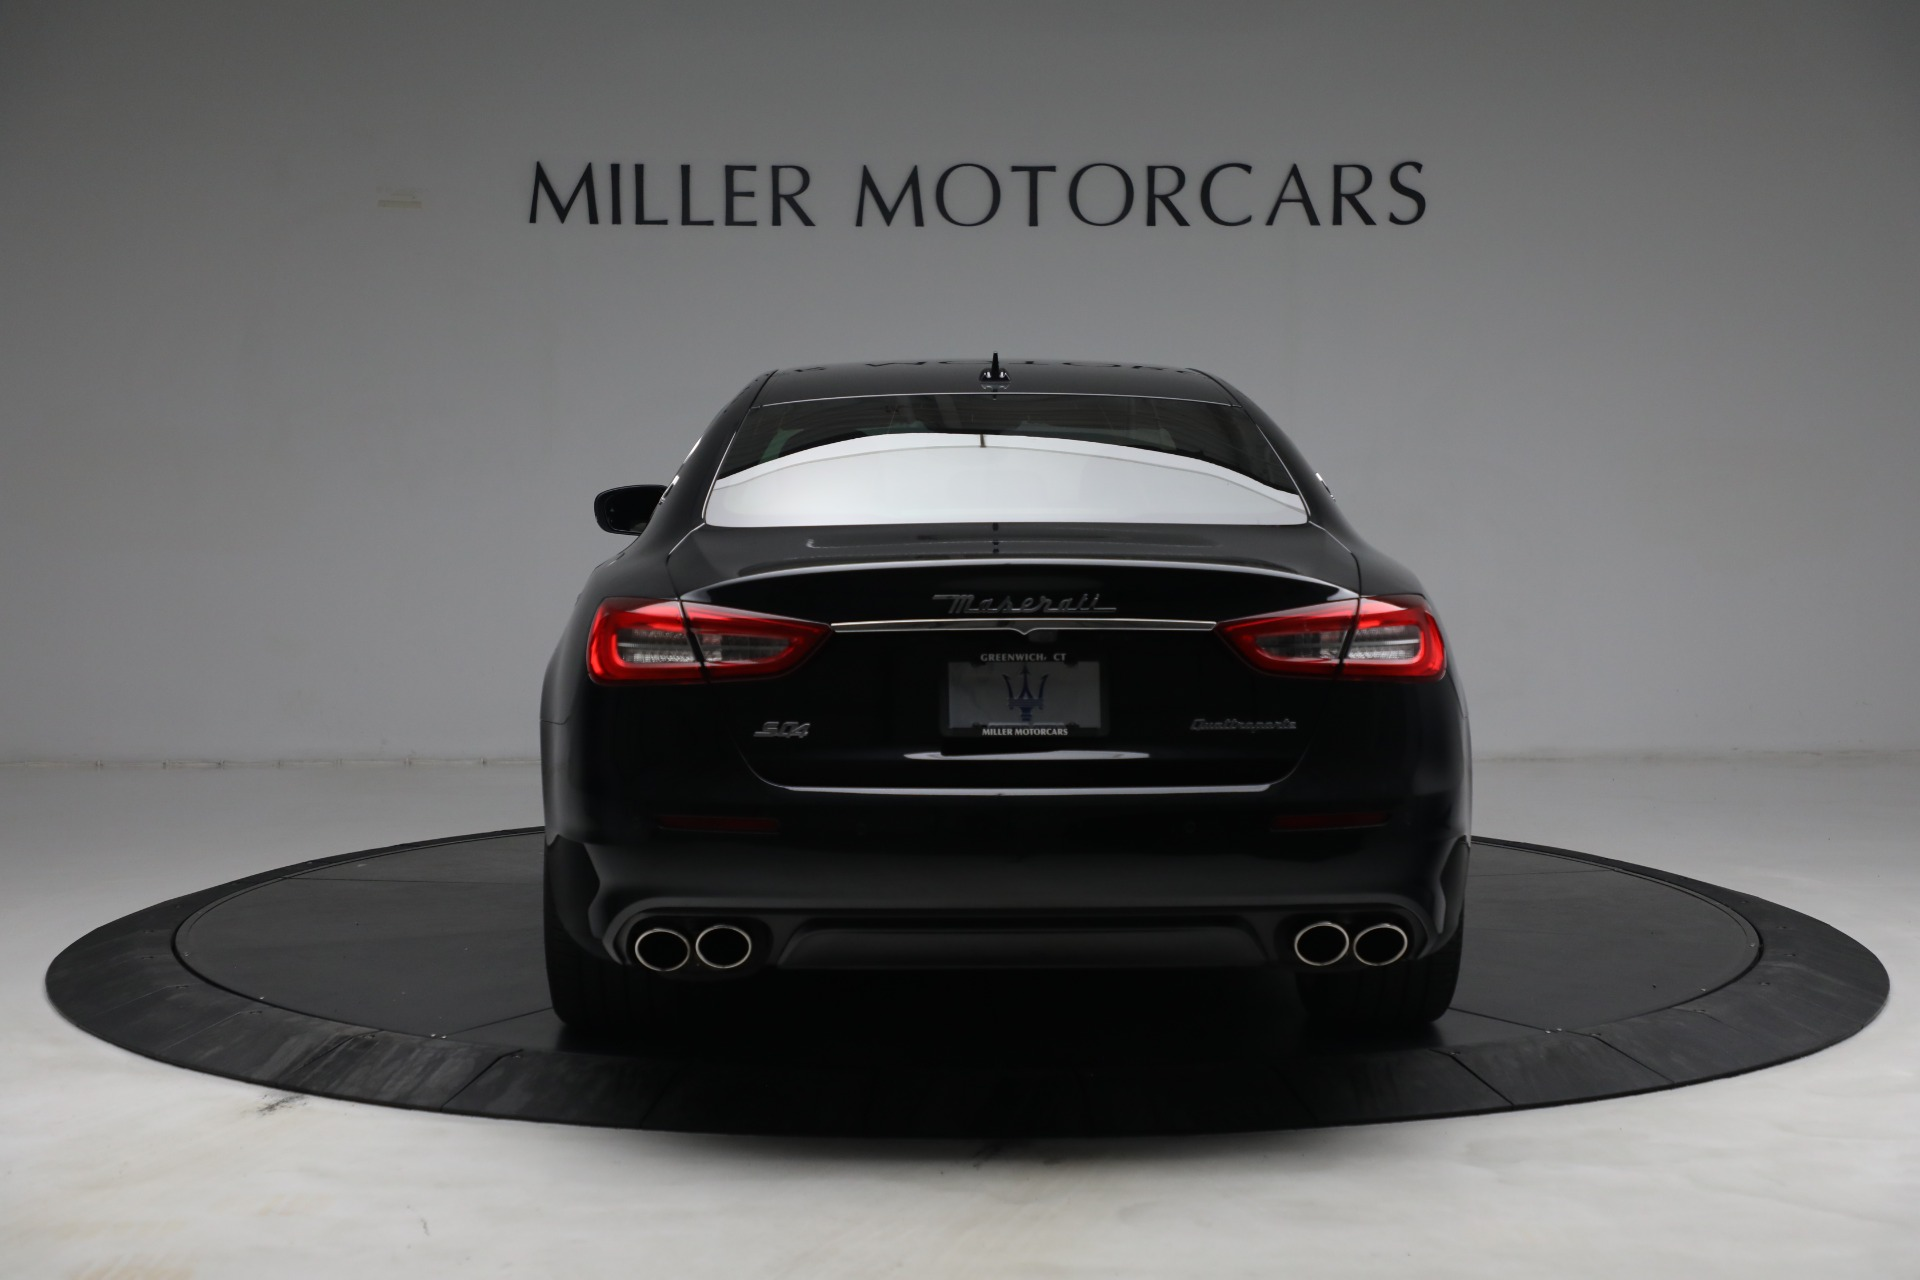 New 2019 Maserati Quattroporte S Q4 GranLusso For Sale In Greenwich, CT 2619_p6